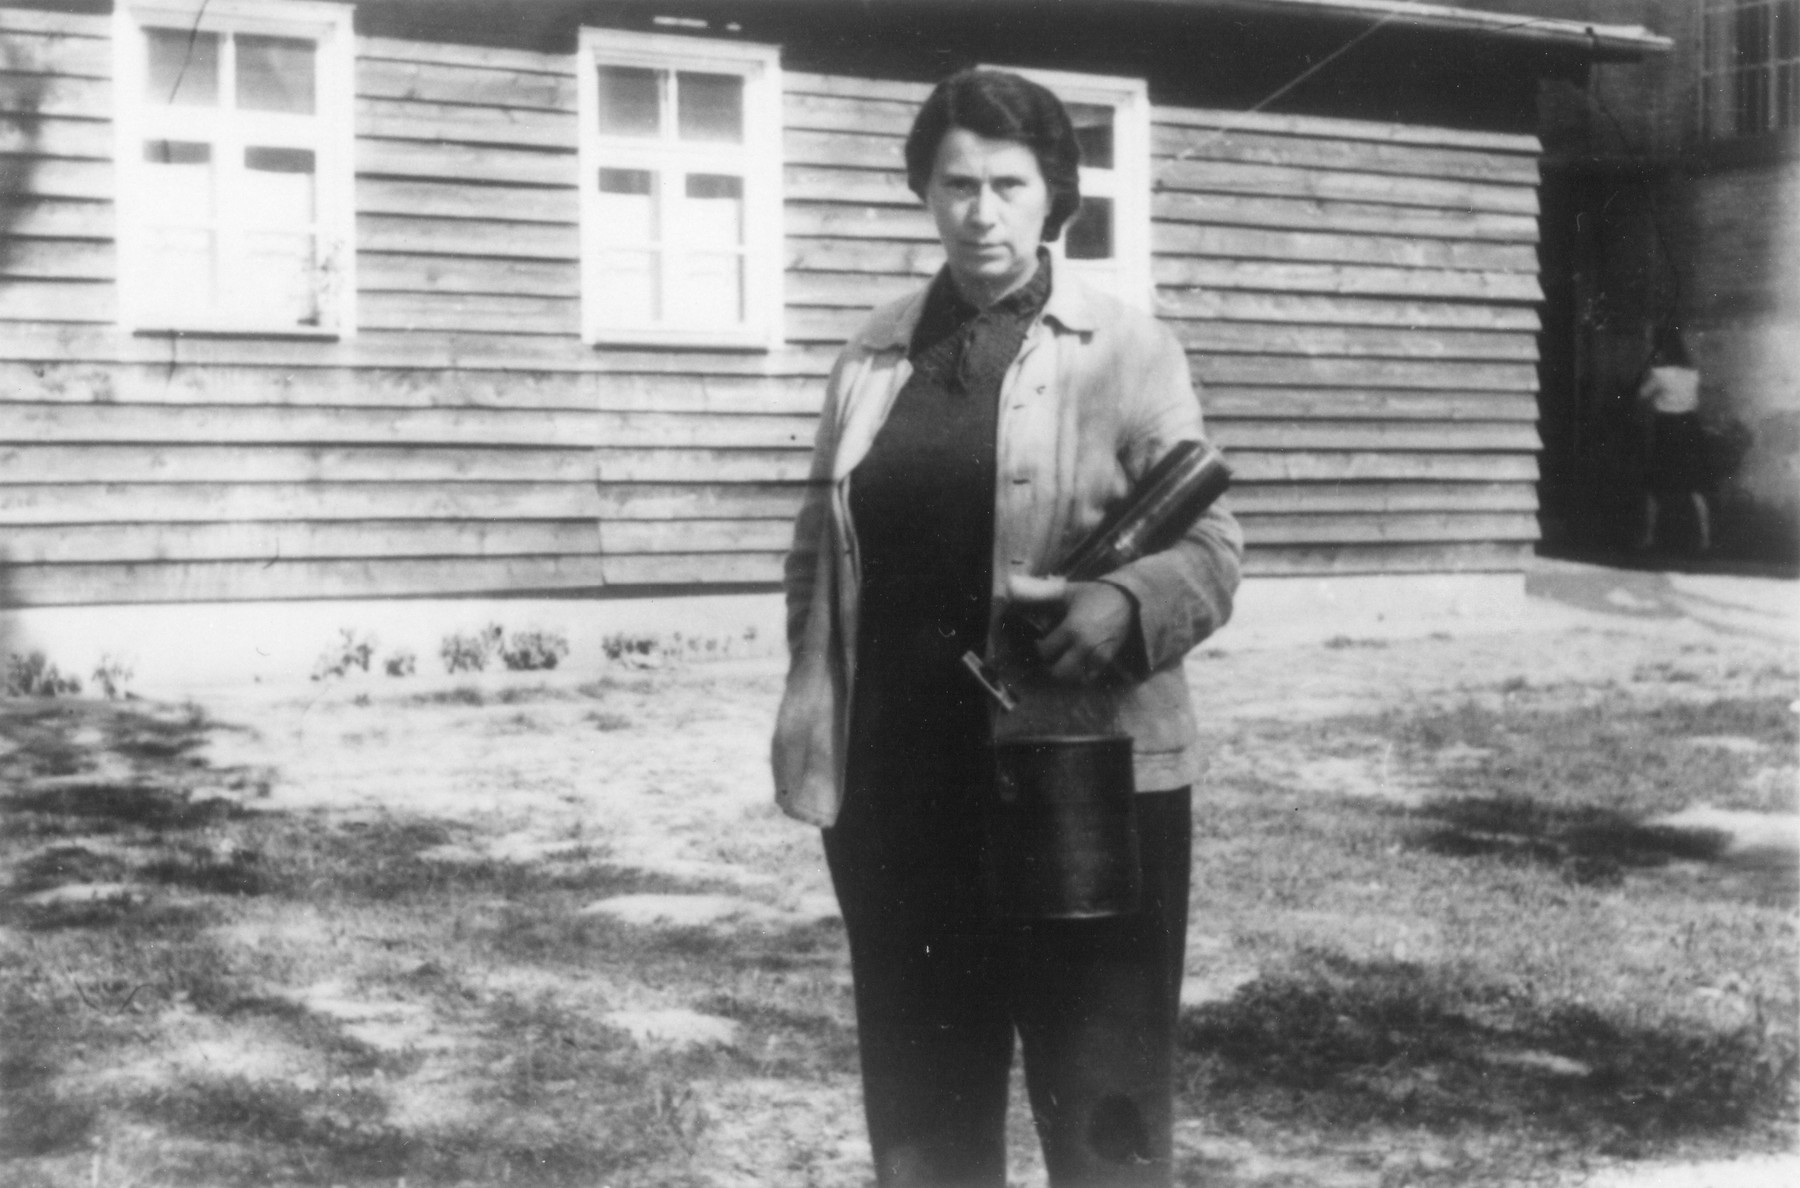 Ida Brauer poses with a metal can in front of the delousing unit where she worked.